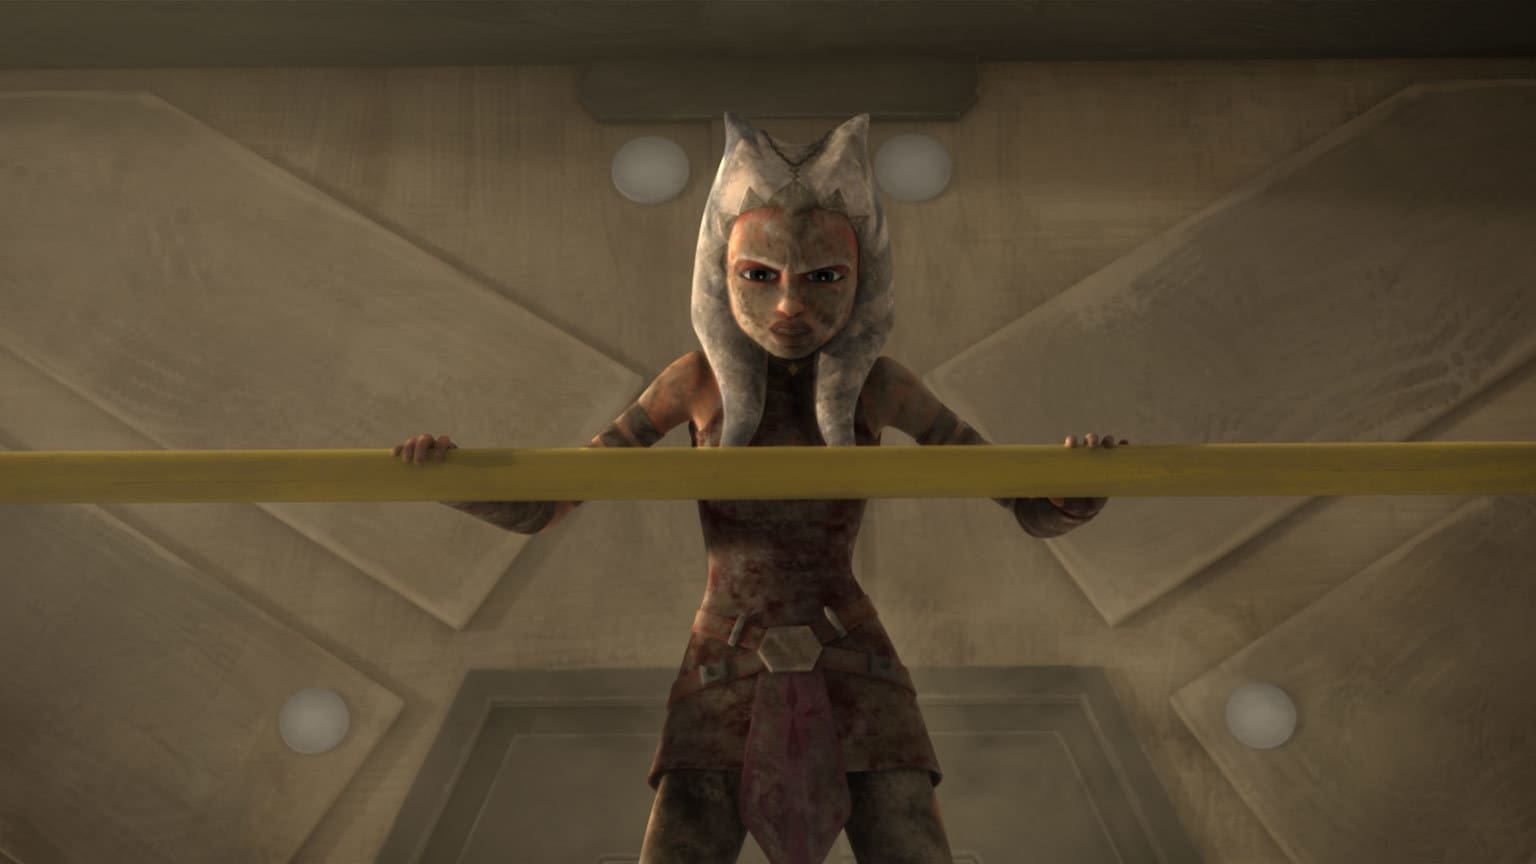 Poll: What's Your Favorite Ahsoka Tano Moment in Star Wars: The Clone Wars (So Far)?